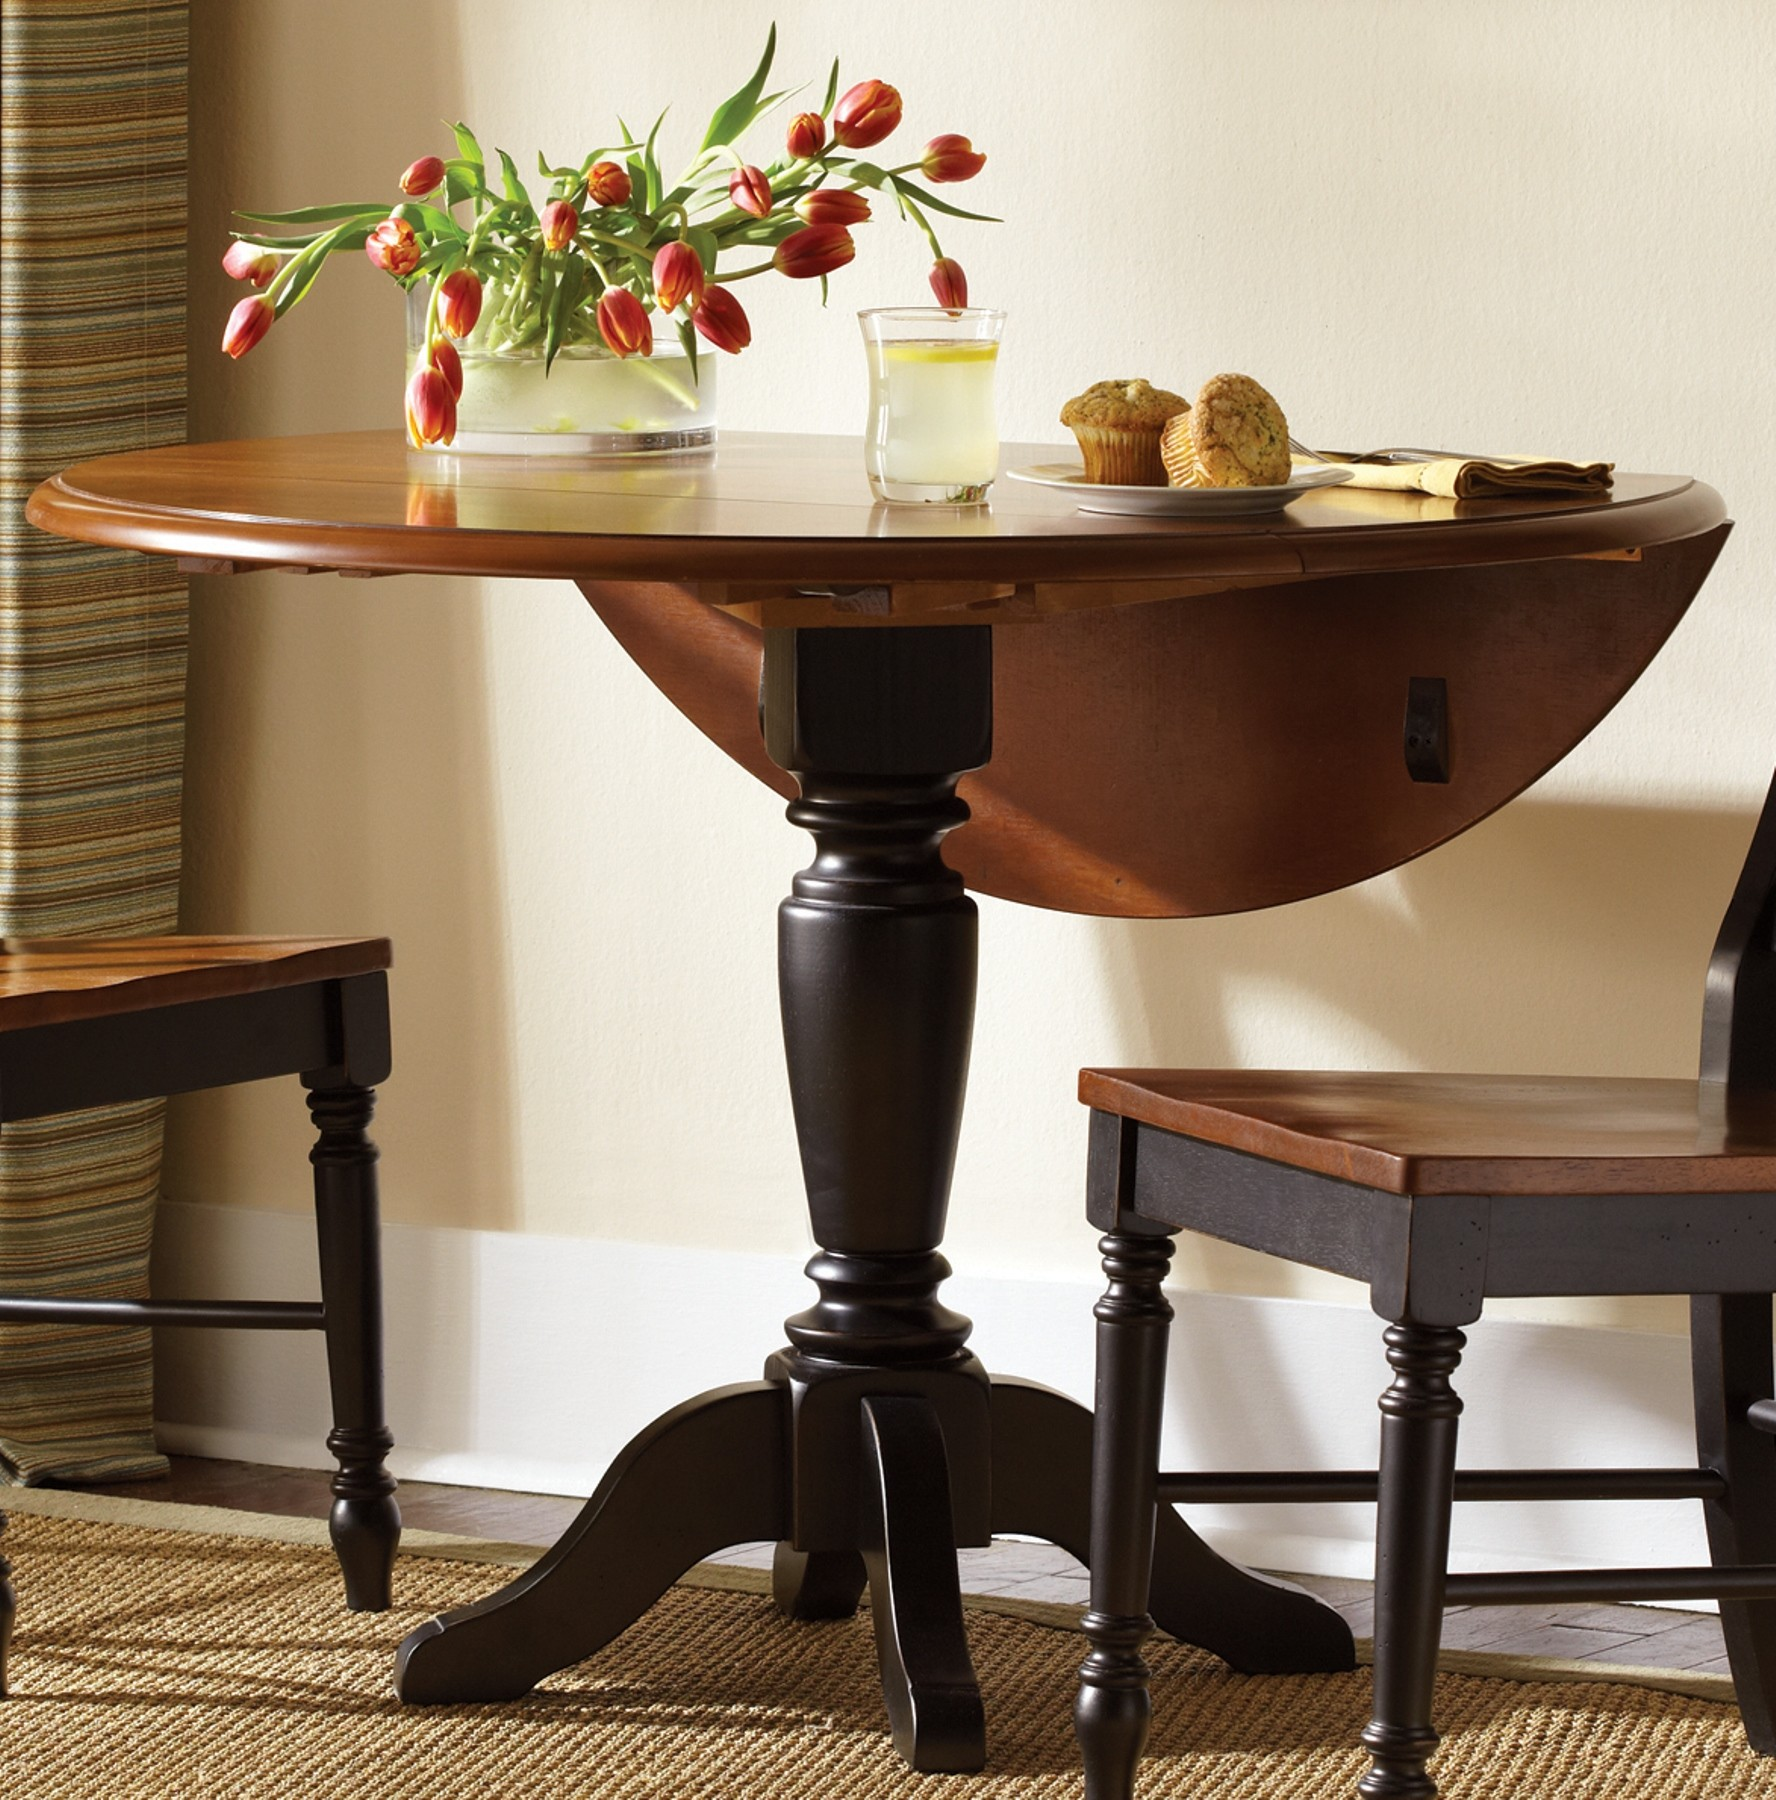 low country black drop leaf pedestal table liberty furniture from liberty 80 t4242 p4242. Black Bedroom Furniture Sets. Home Design Ideas